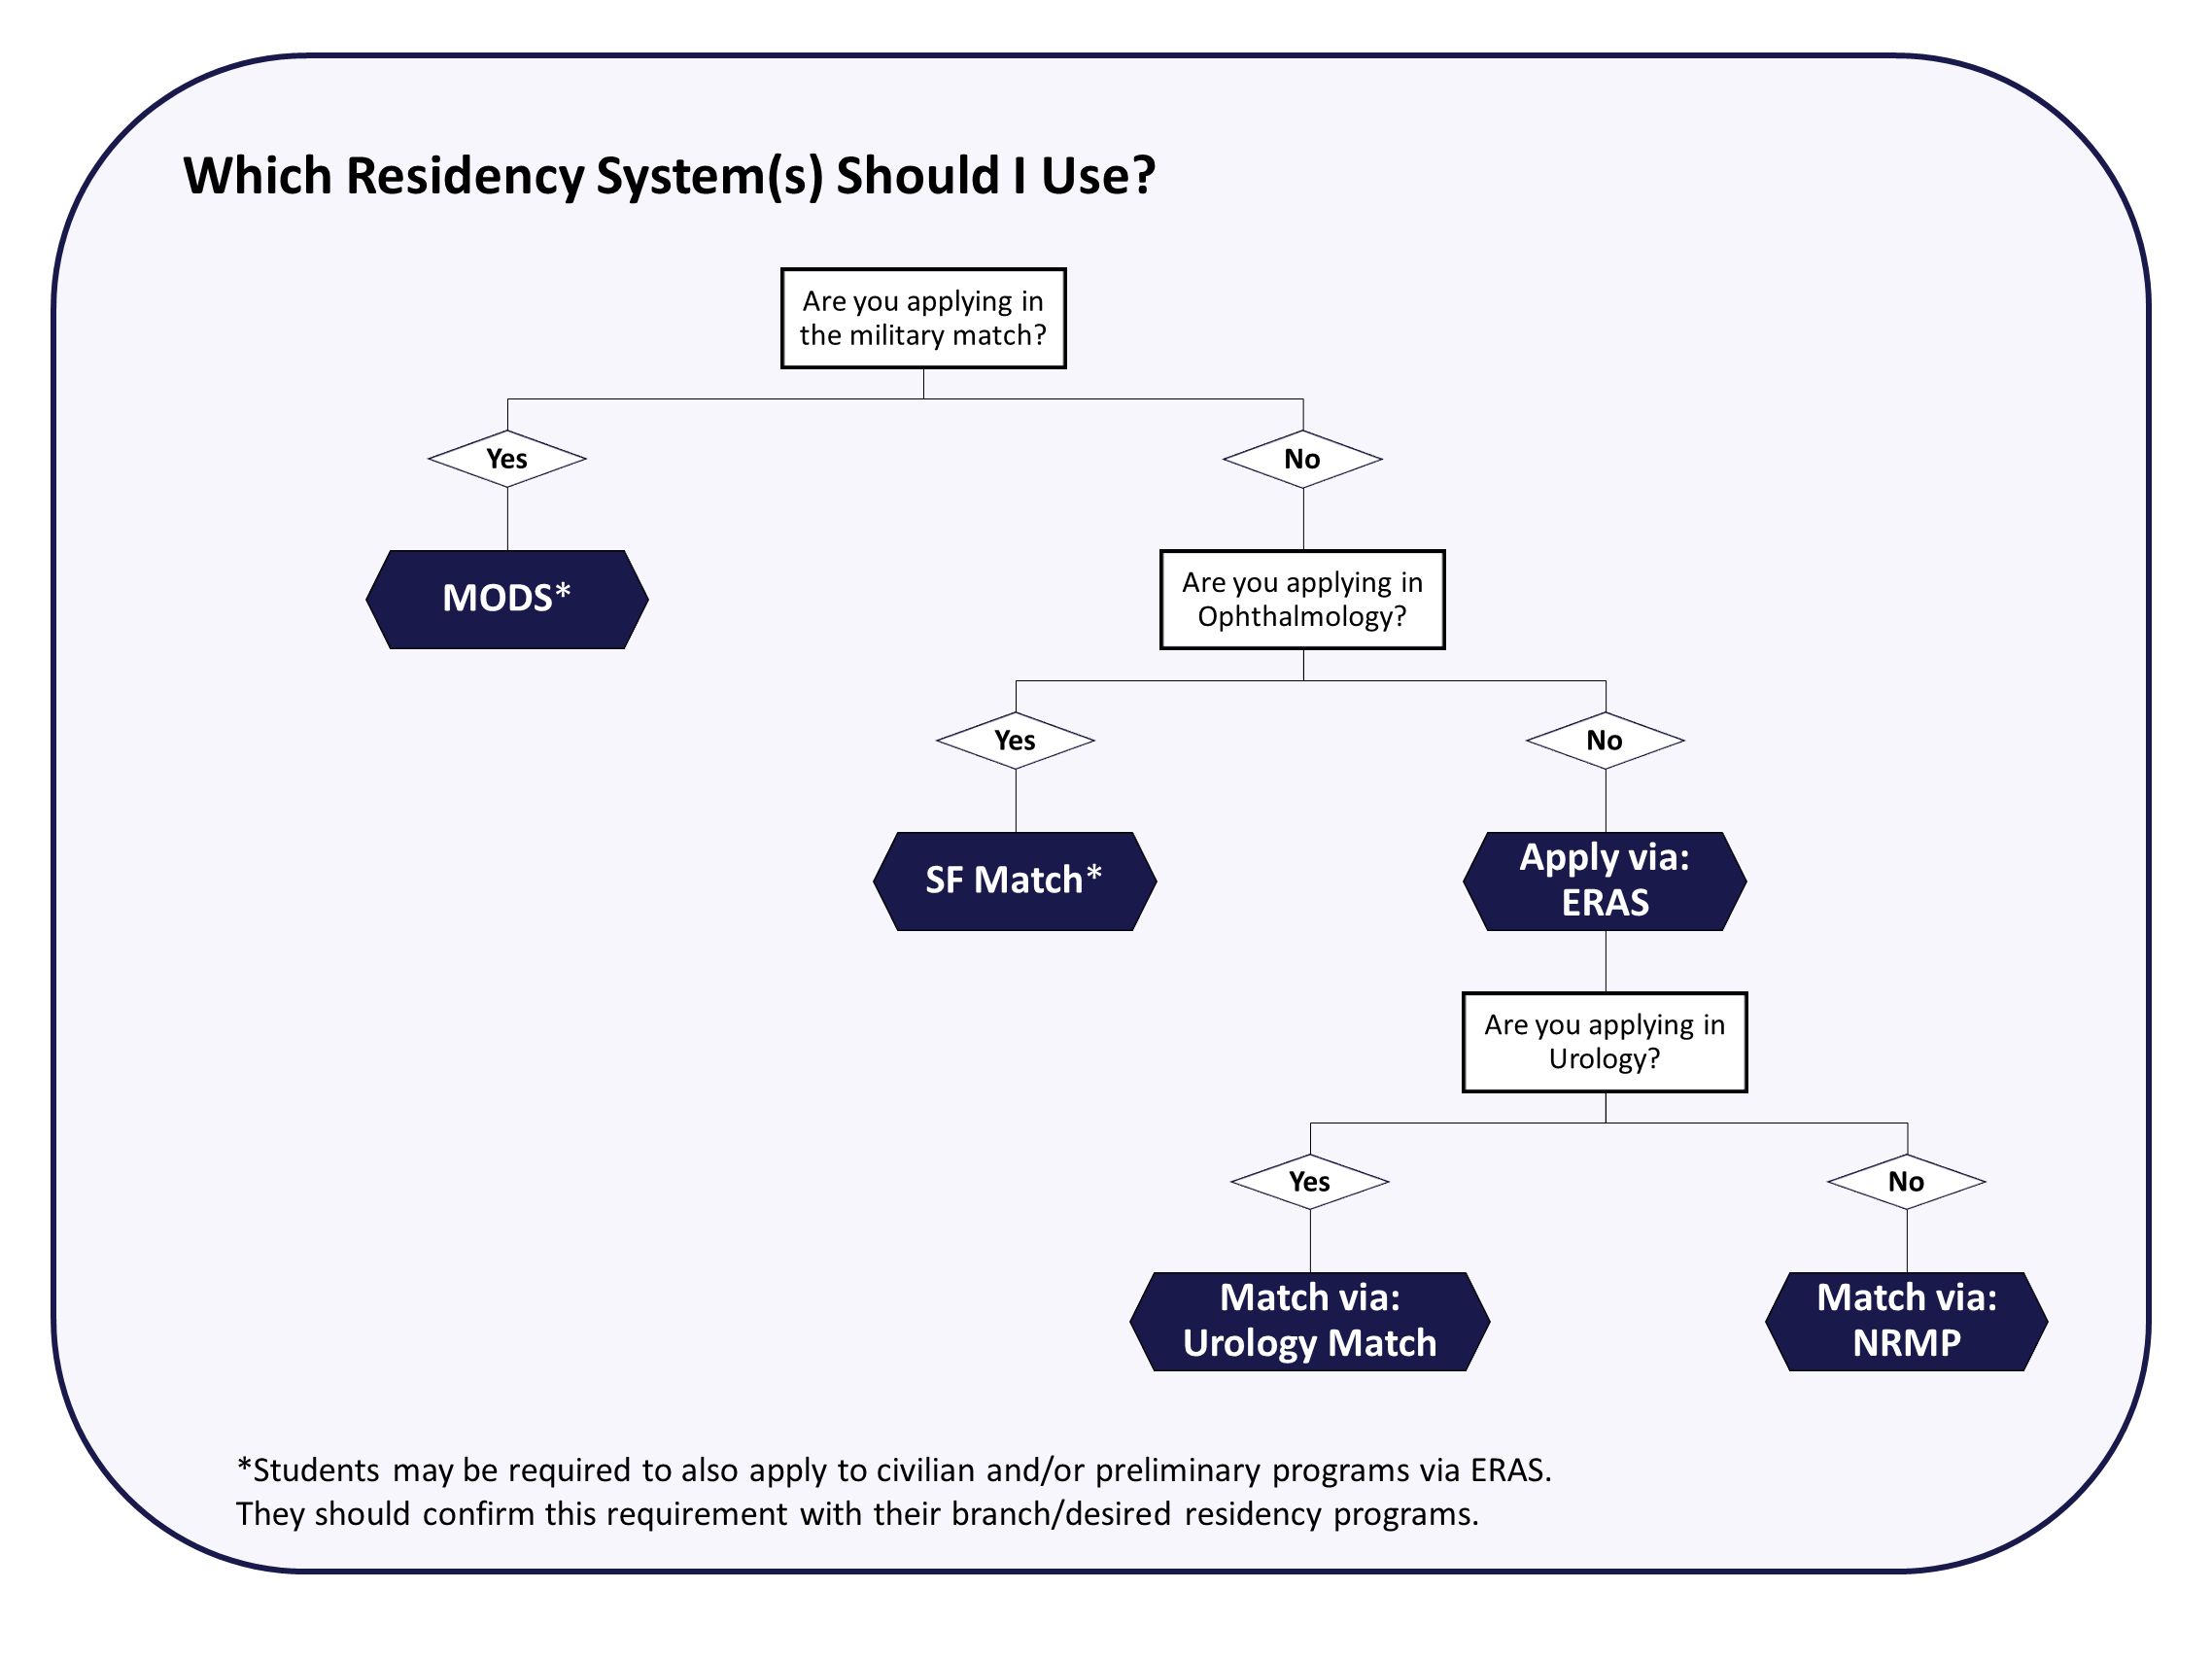 flowchart explaining US based residency application and match systems